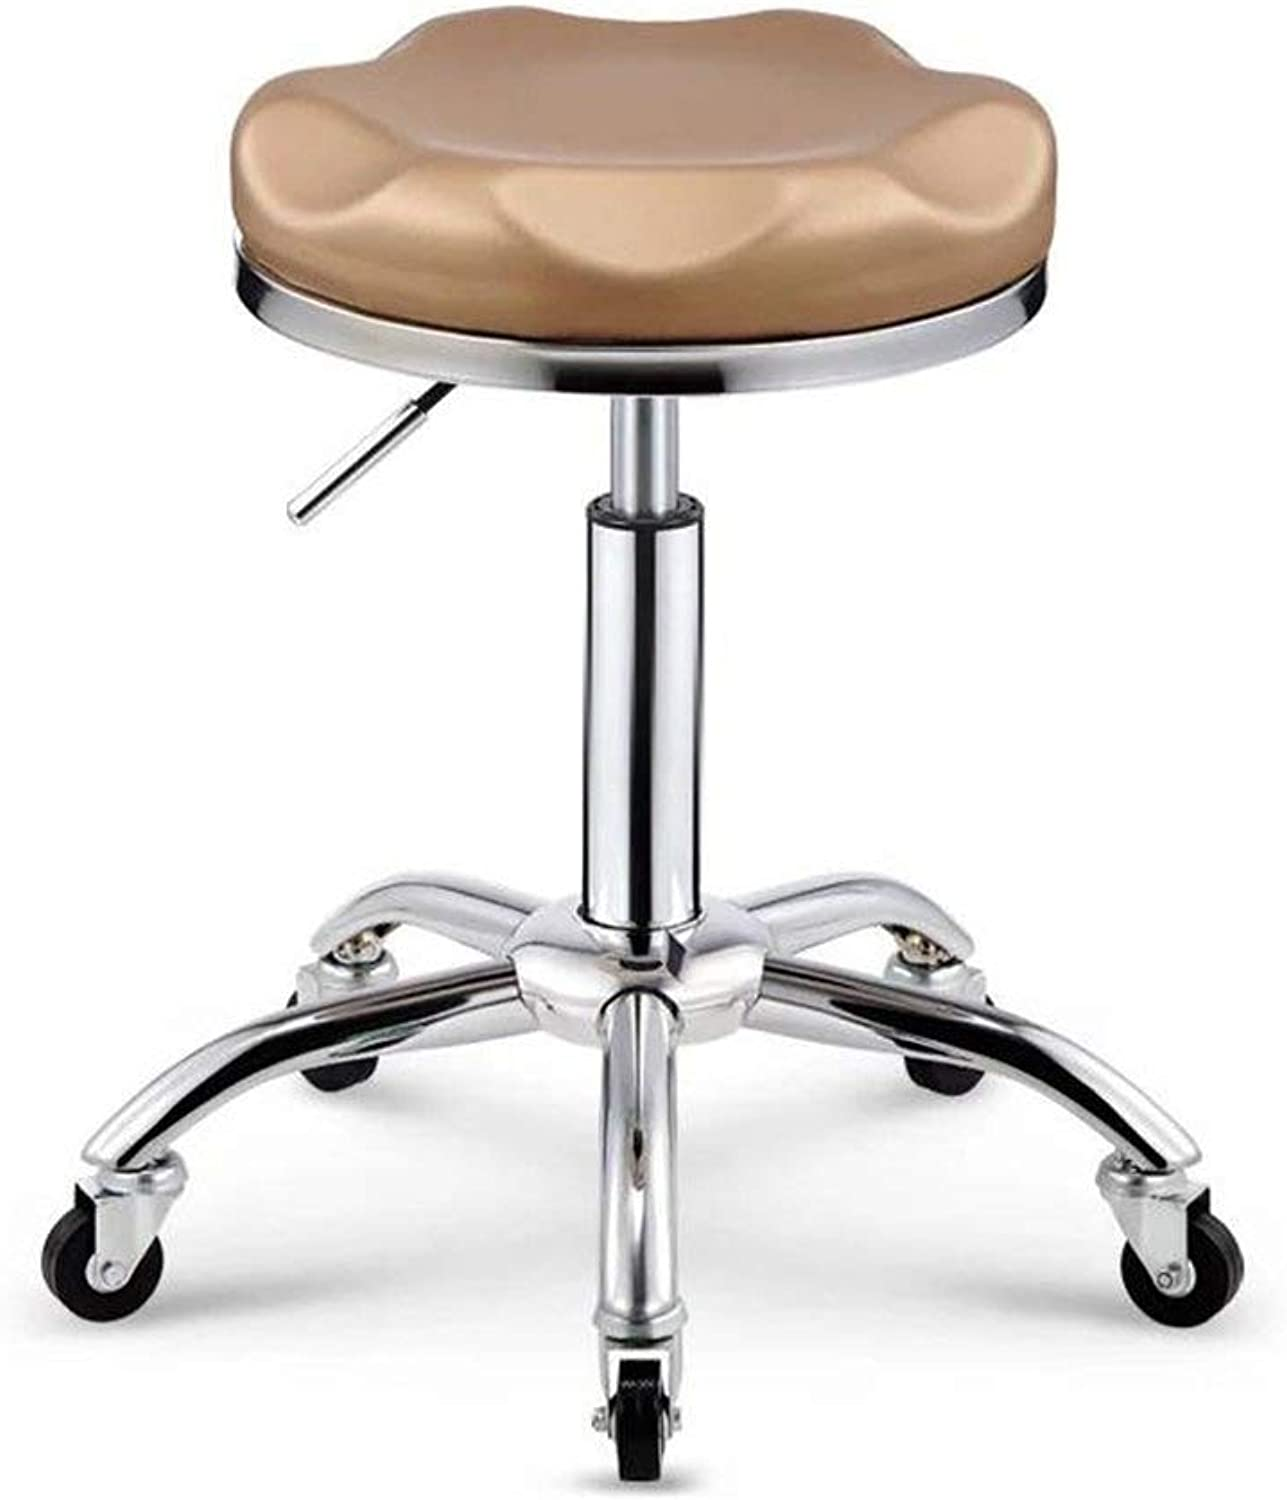 Lifting High Stools Swivel Chair Barber Stool Creative Dining Chair,Beautiful Bearing Capacity redatable GMING (color   A)